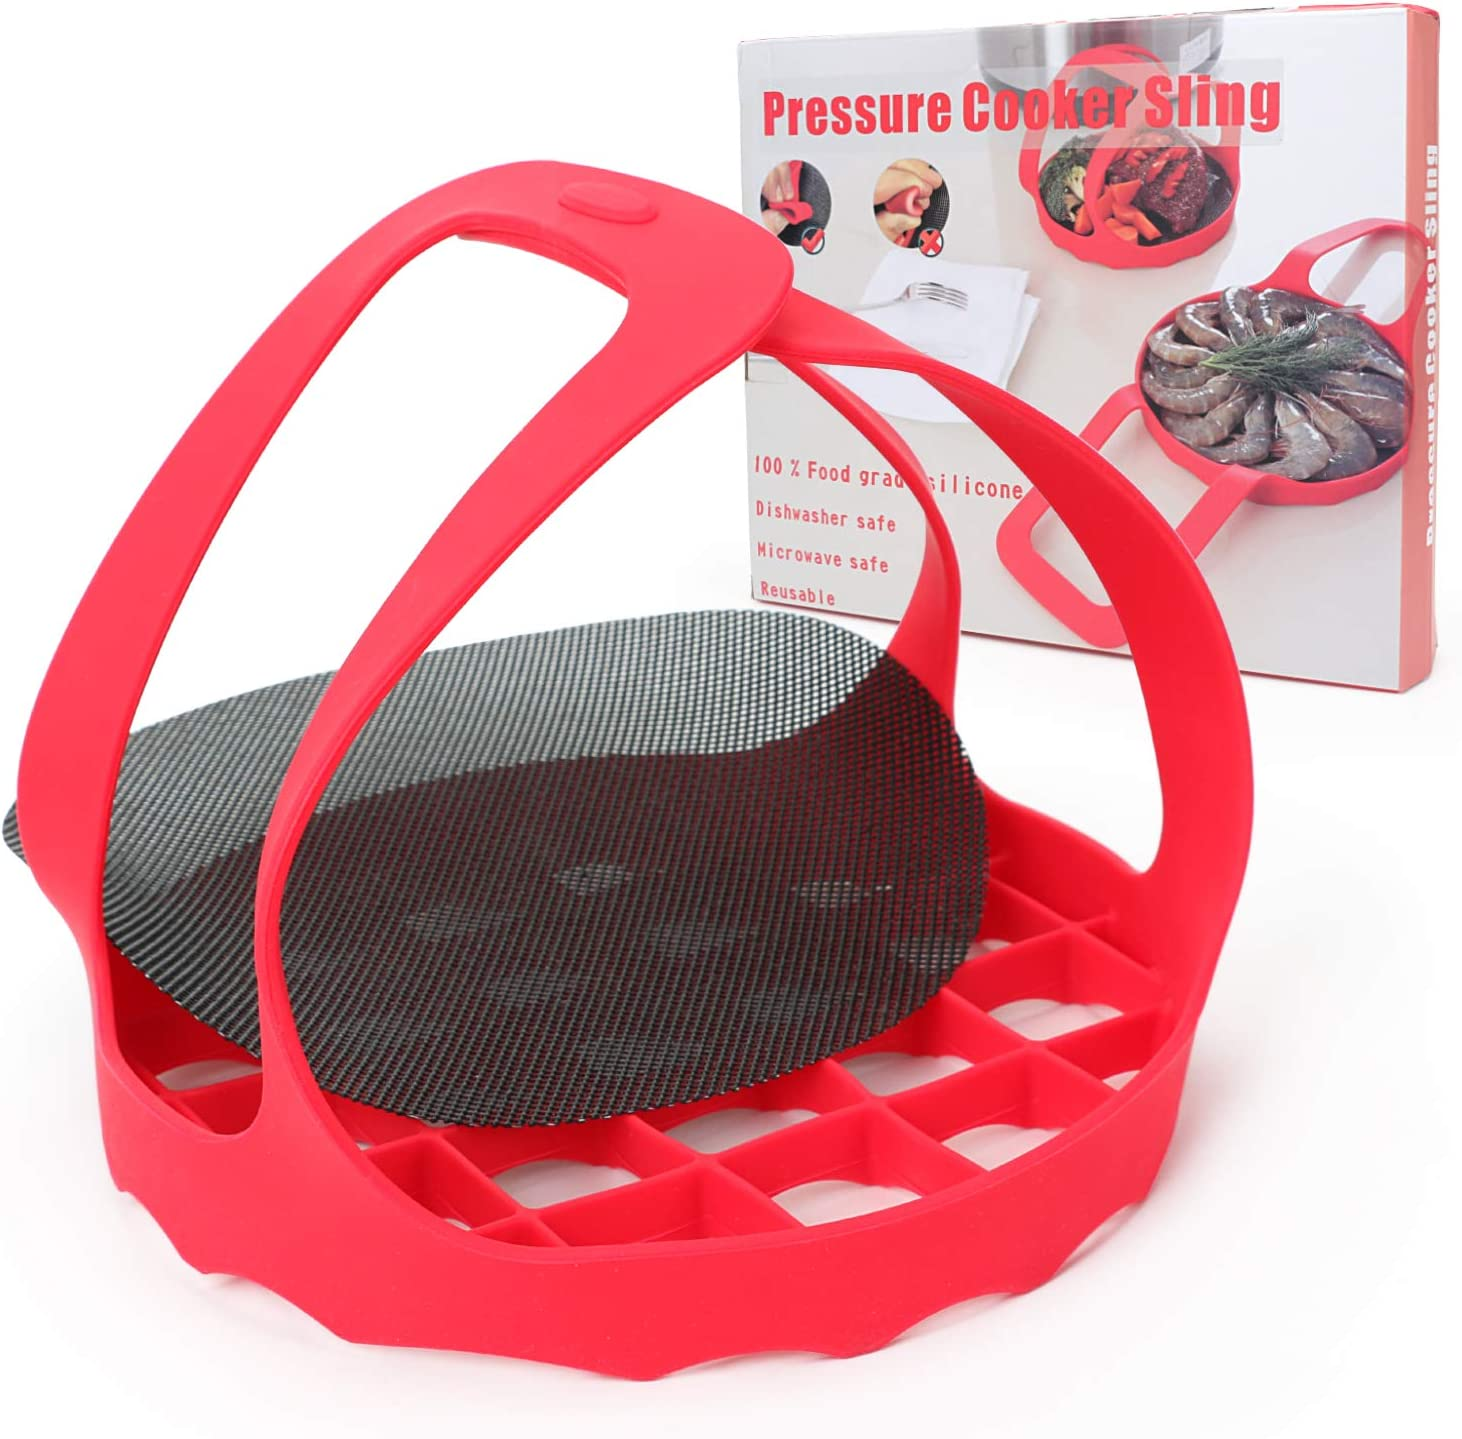 Silicone Trivet Sling Lifter for Pressure Cooker Bakeware, Compatible with 6/8 Qt Instant Pot, Ninja Foodi and Multi-functional Cooker Heat Resistant Egg Steamer Rack with Steam Mat Accessory